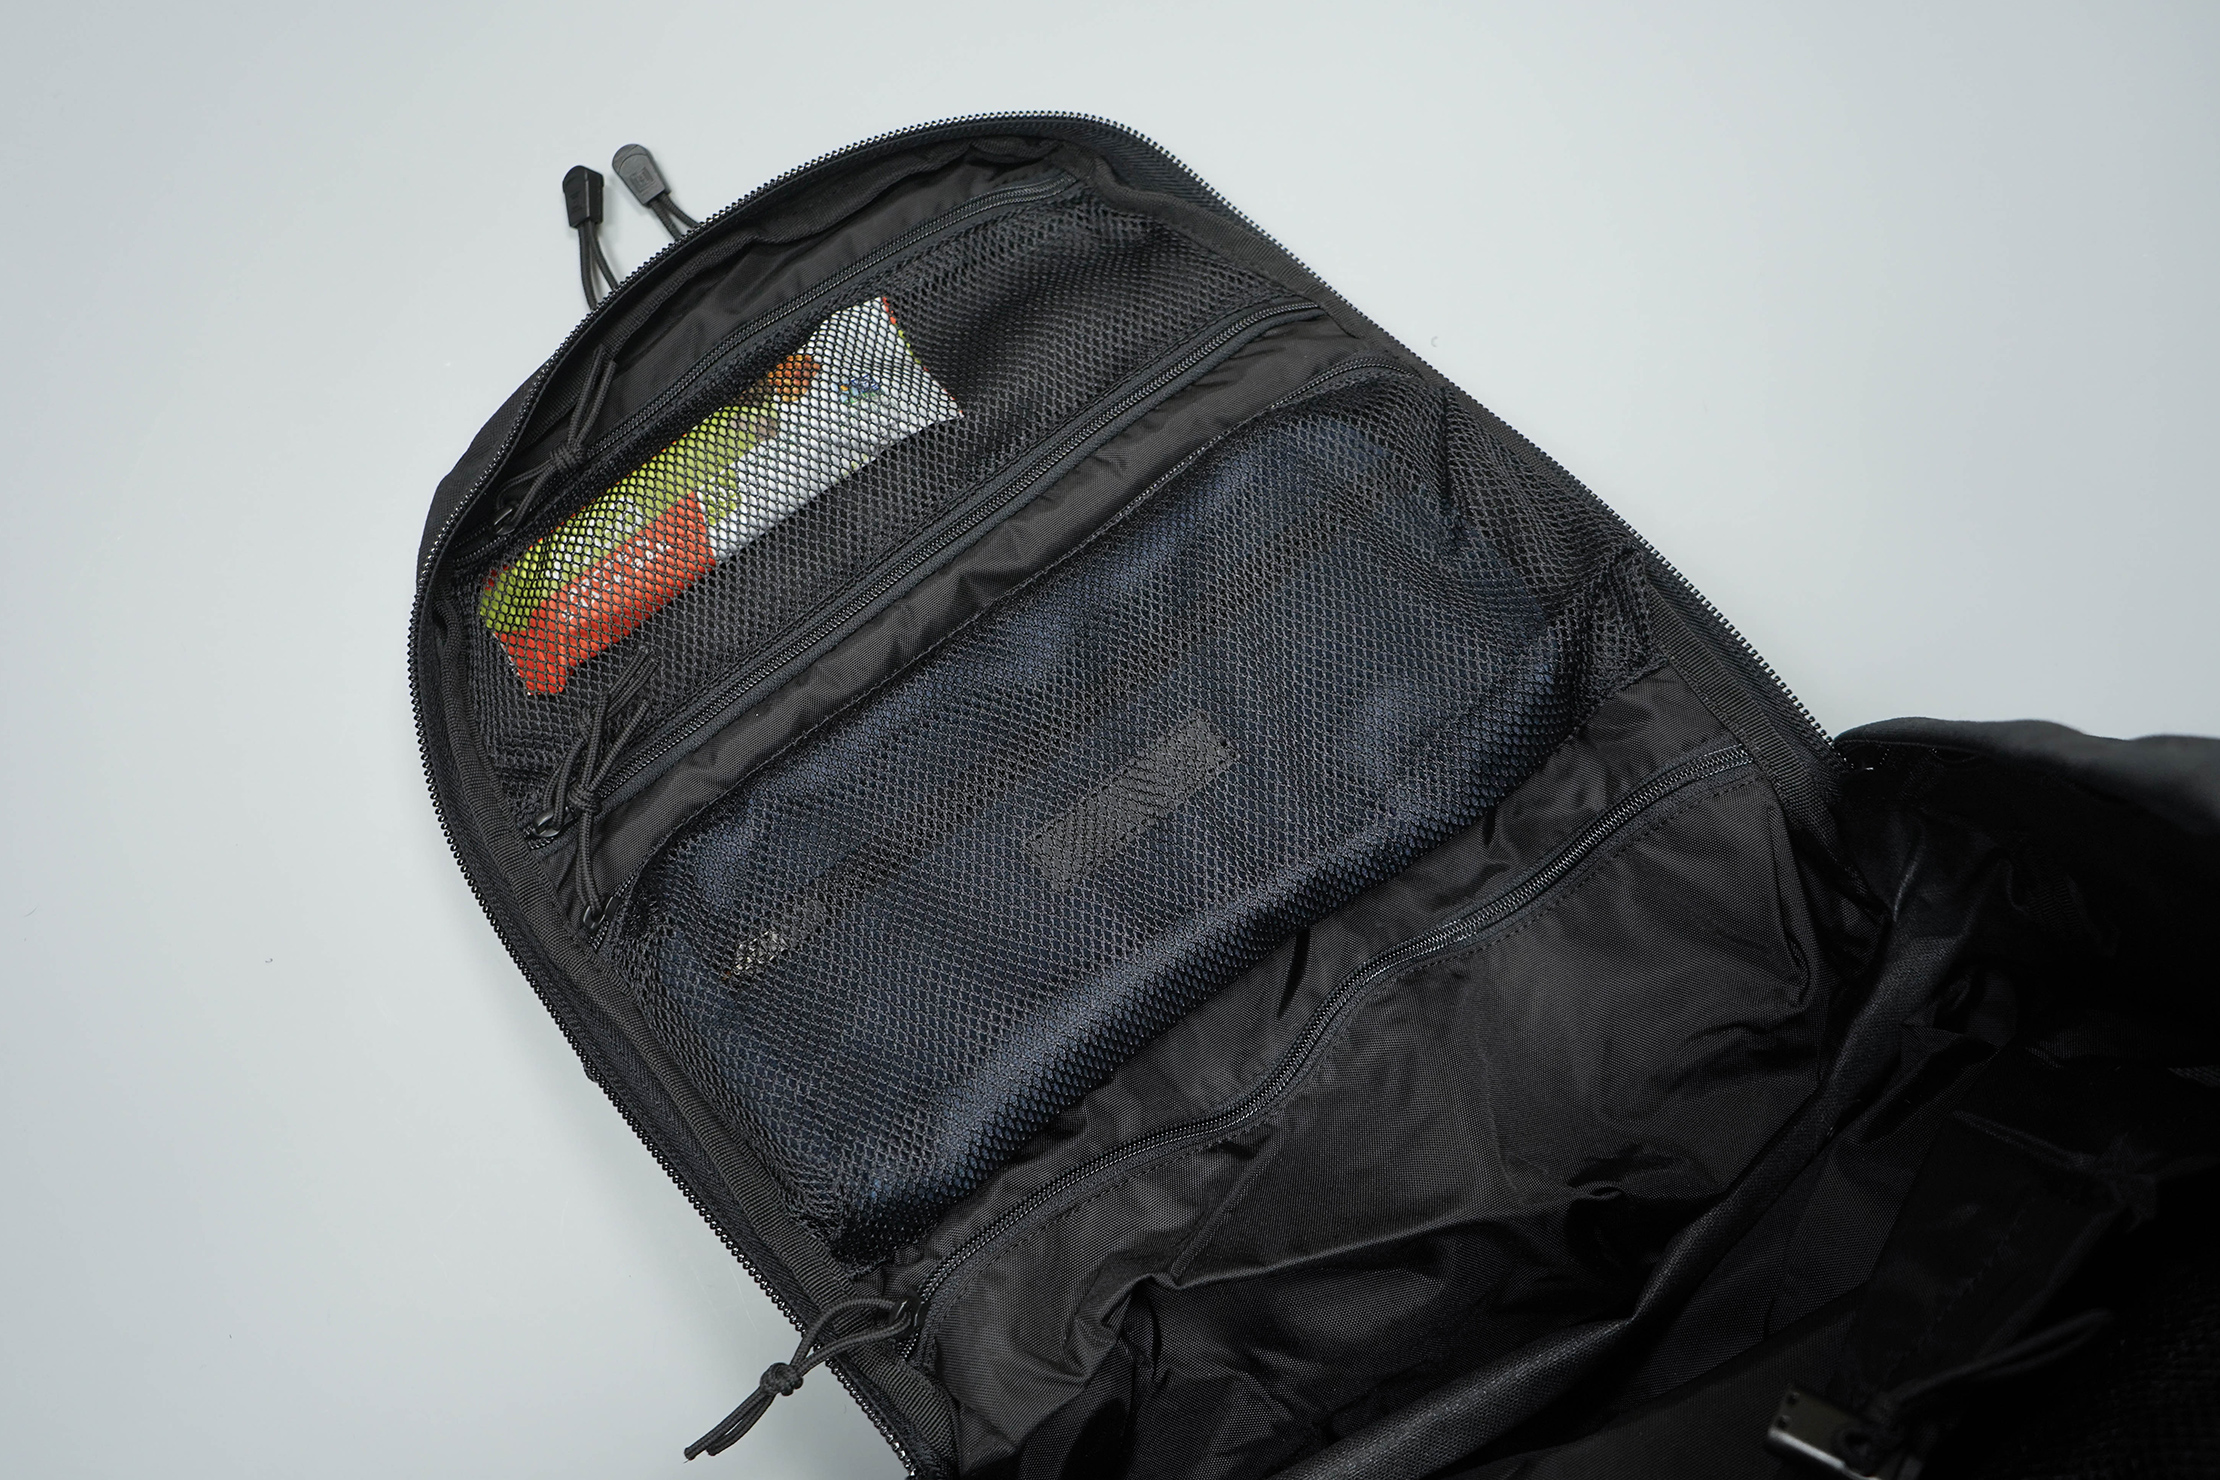 5.11 Tactical Rush24 Backpack Main Compartment Mesh